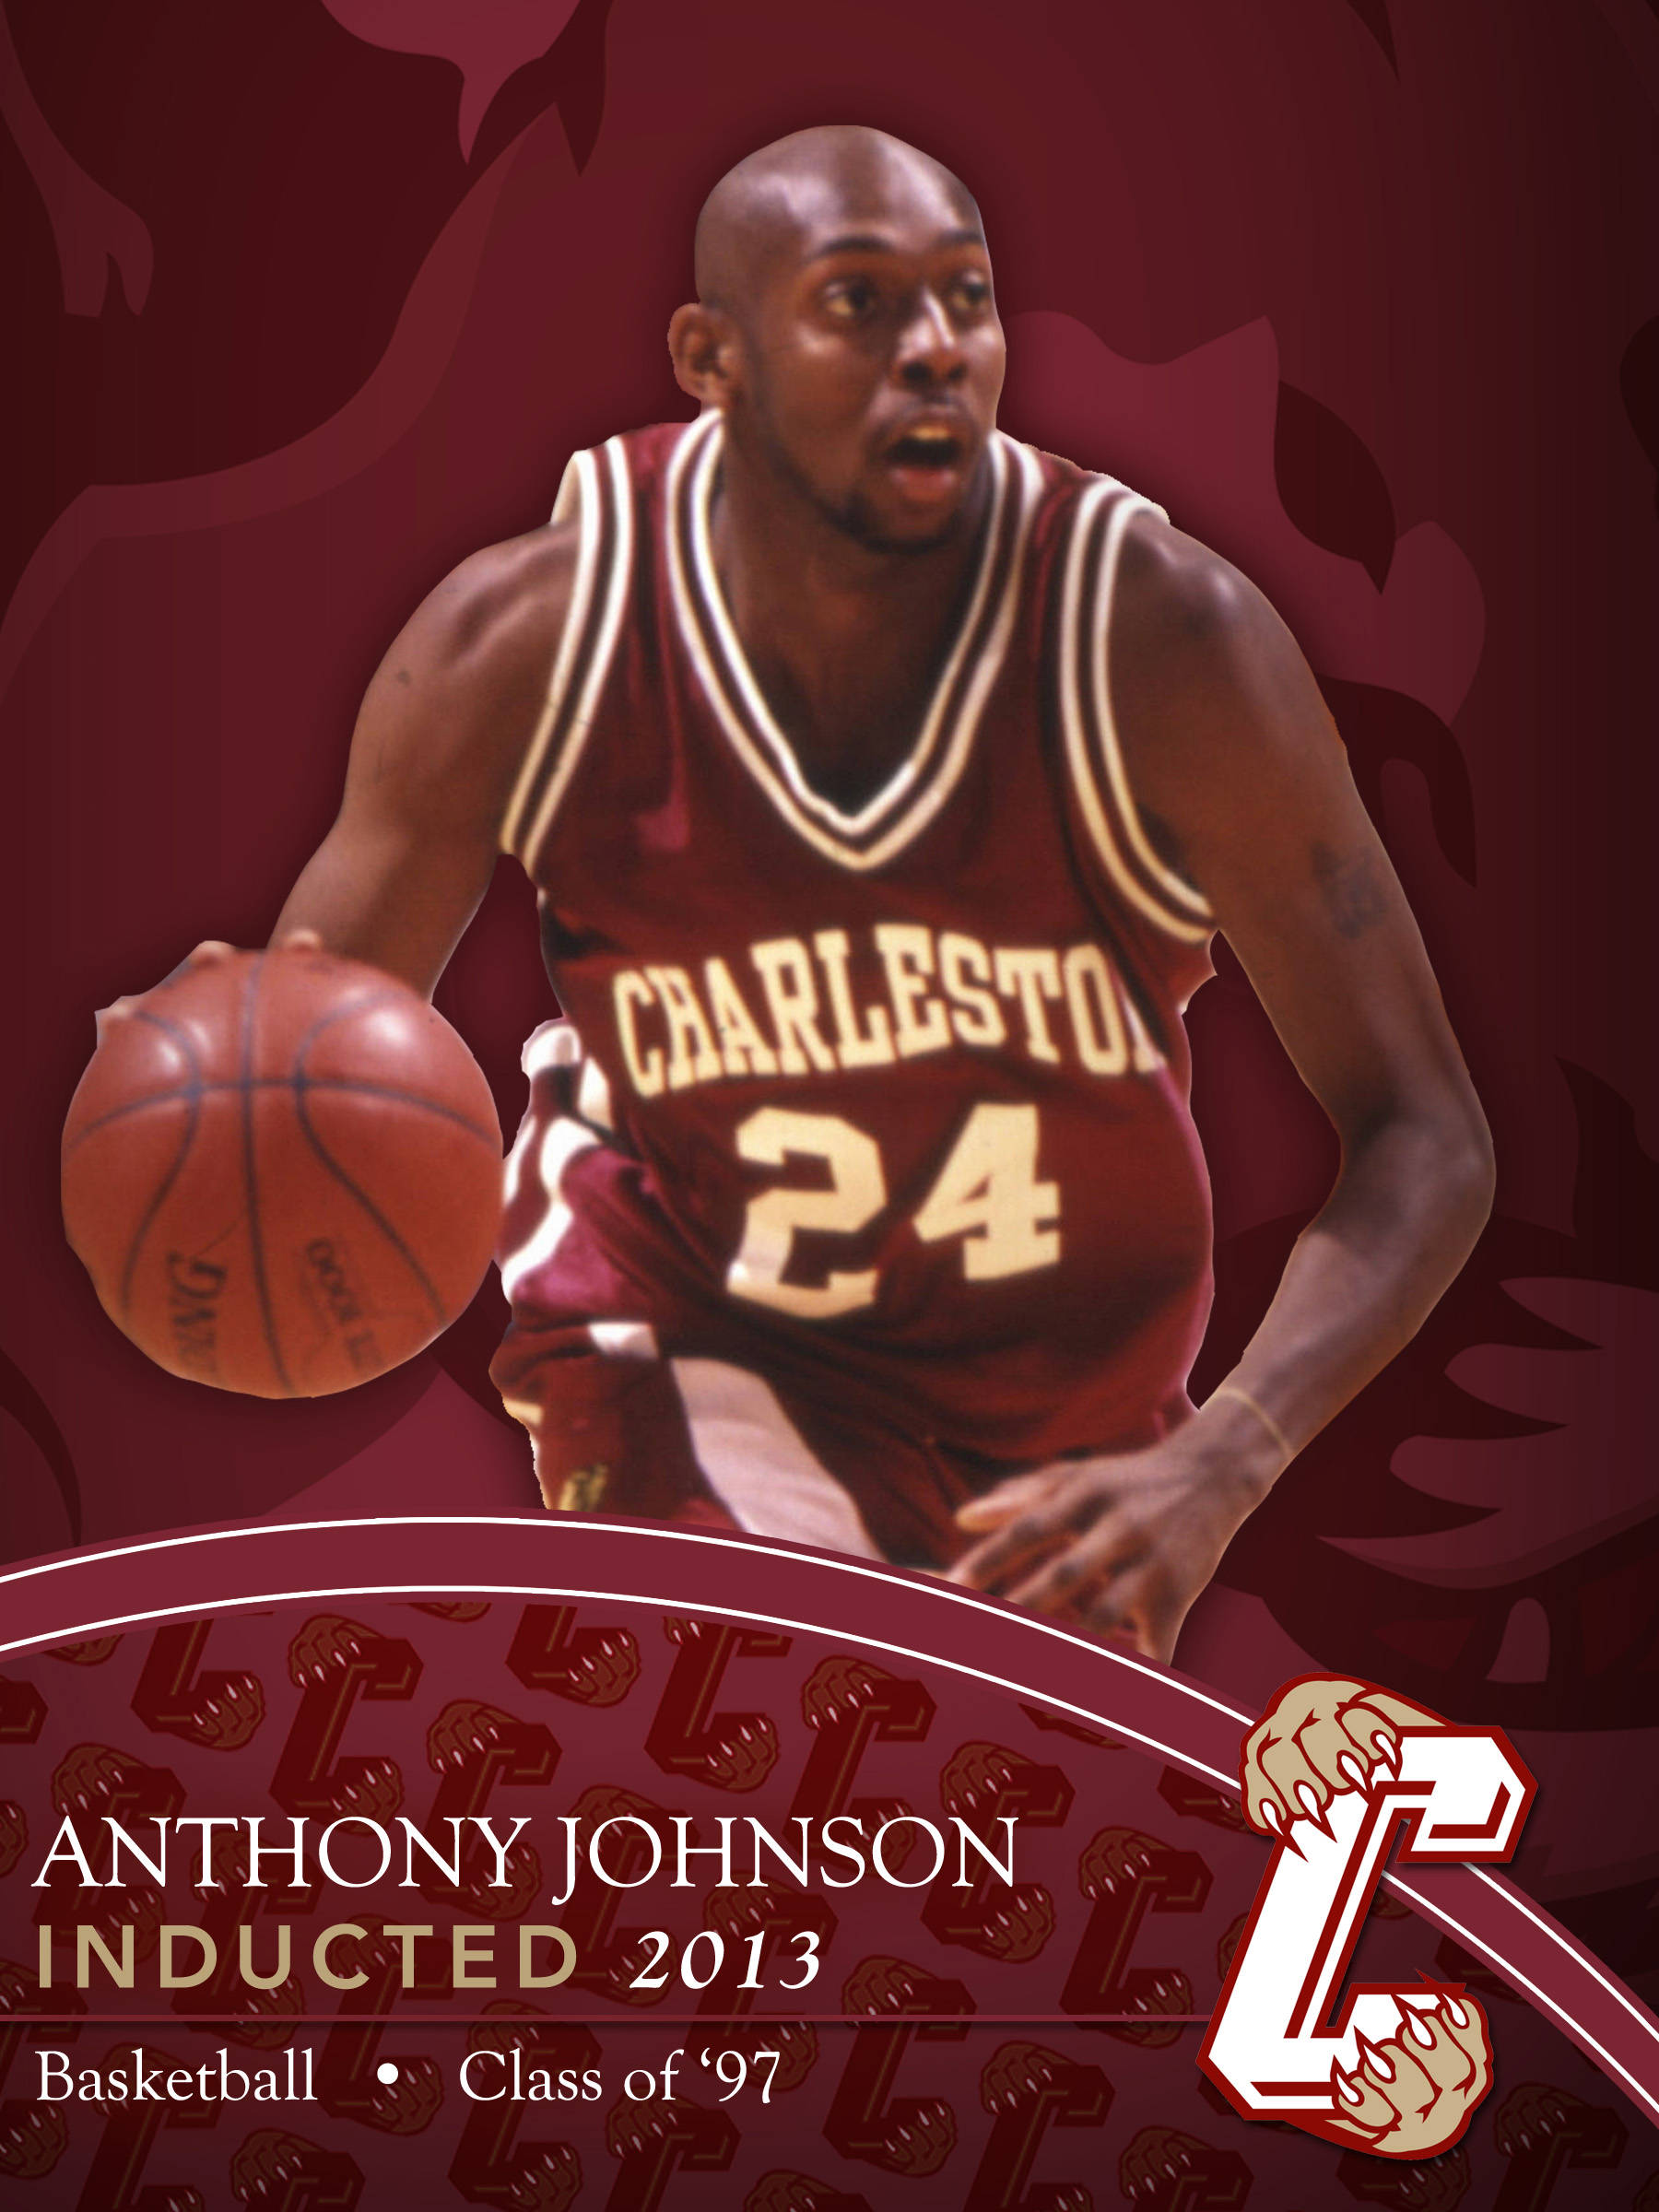 best website 8f52a 3f23d CofC Athletics Hall of Fame: Anthony Johnson - College of ...